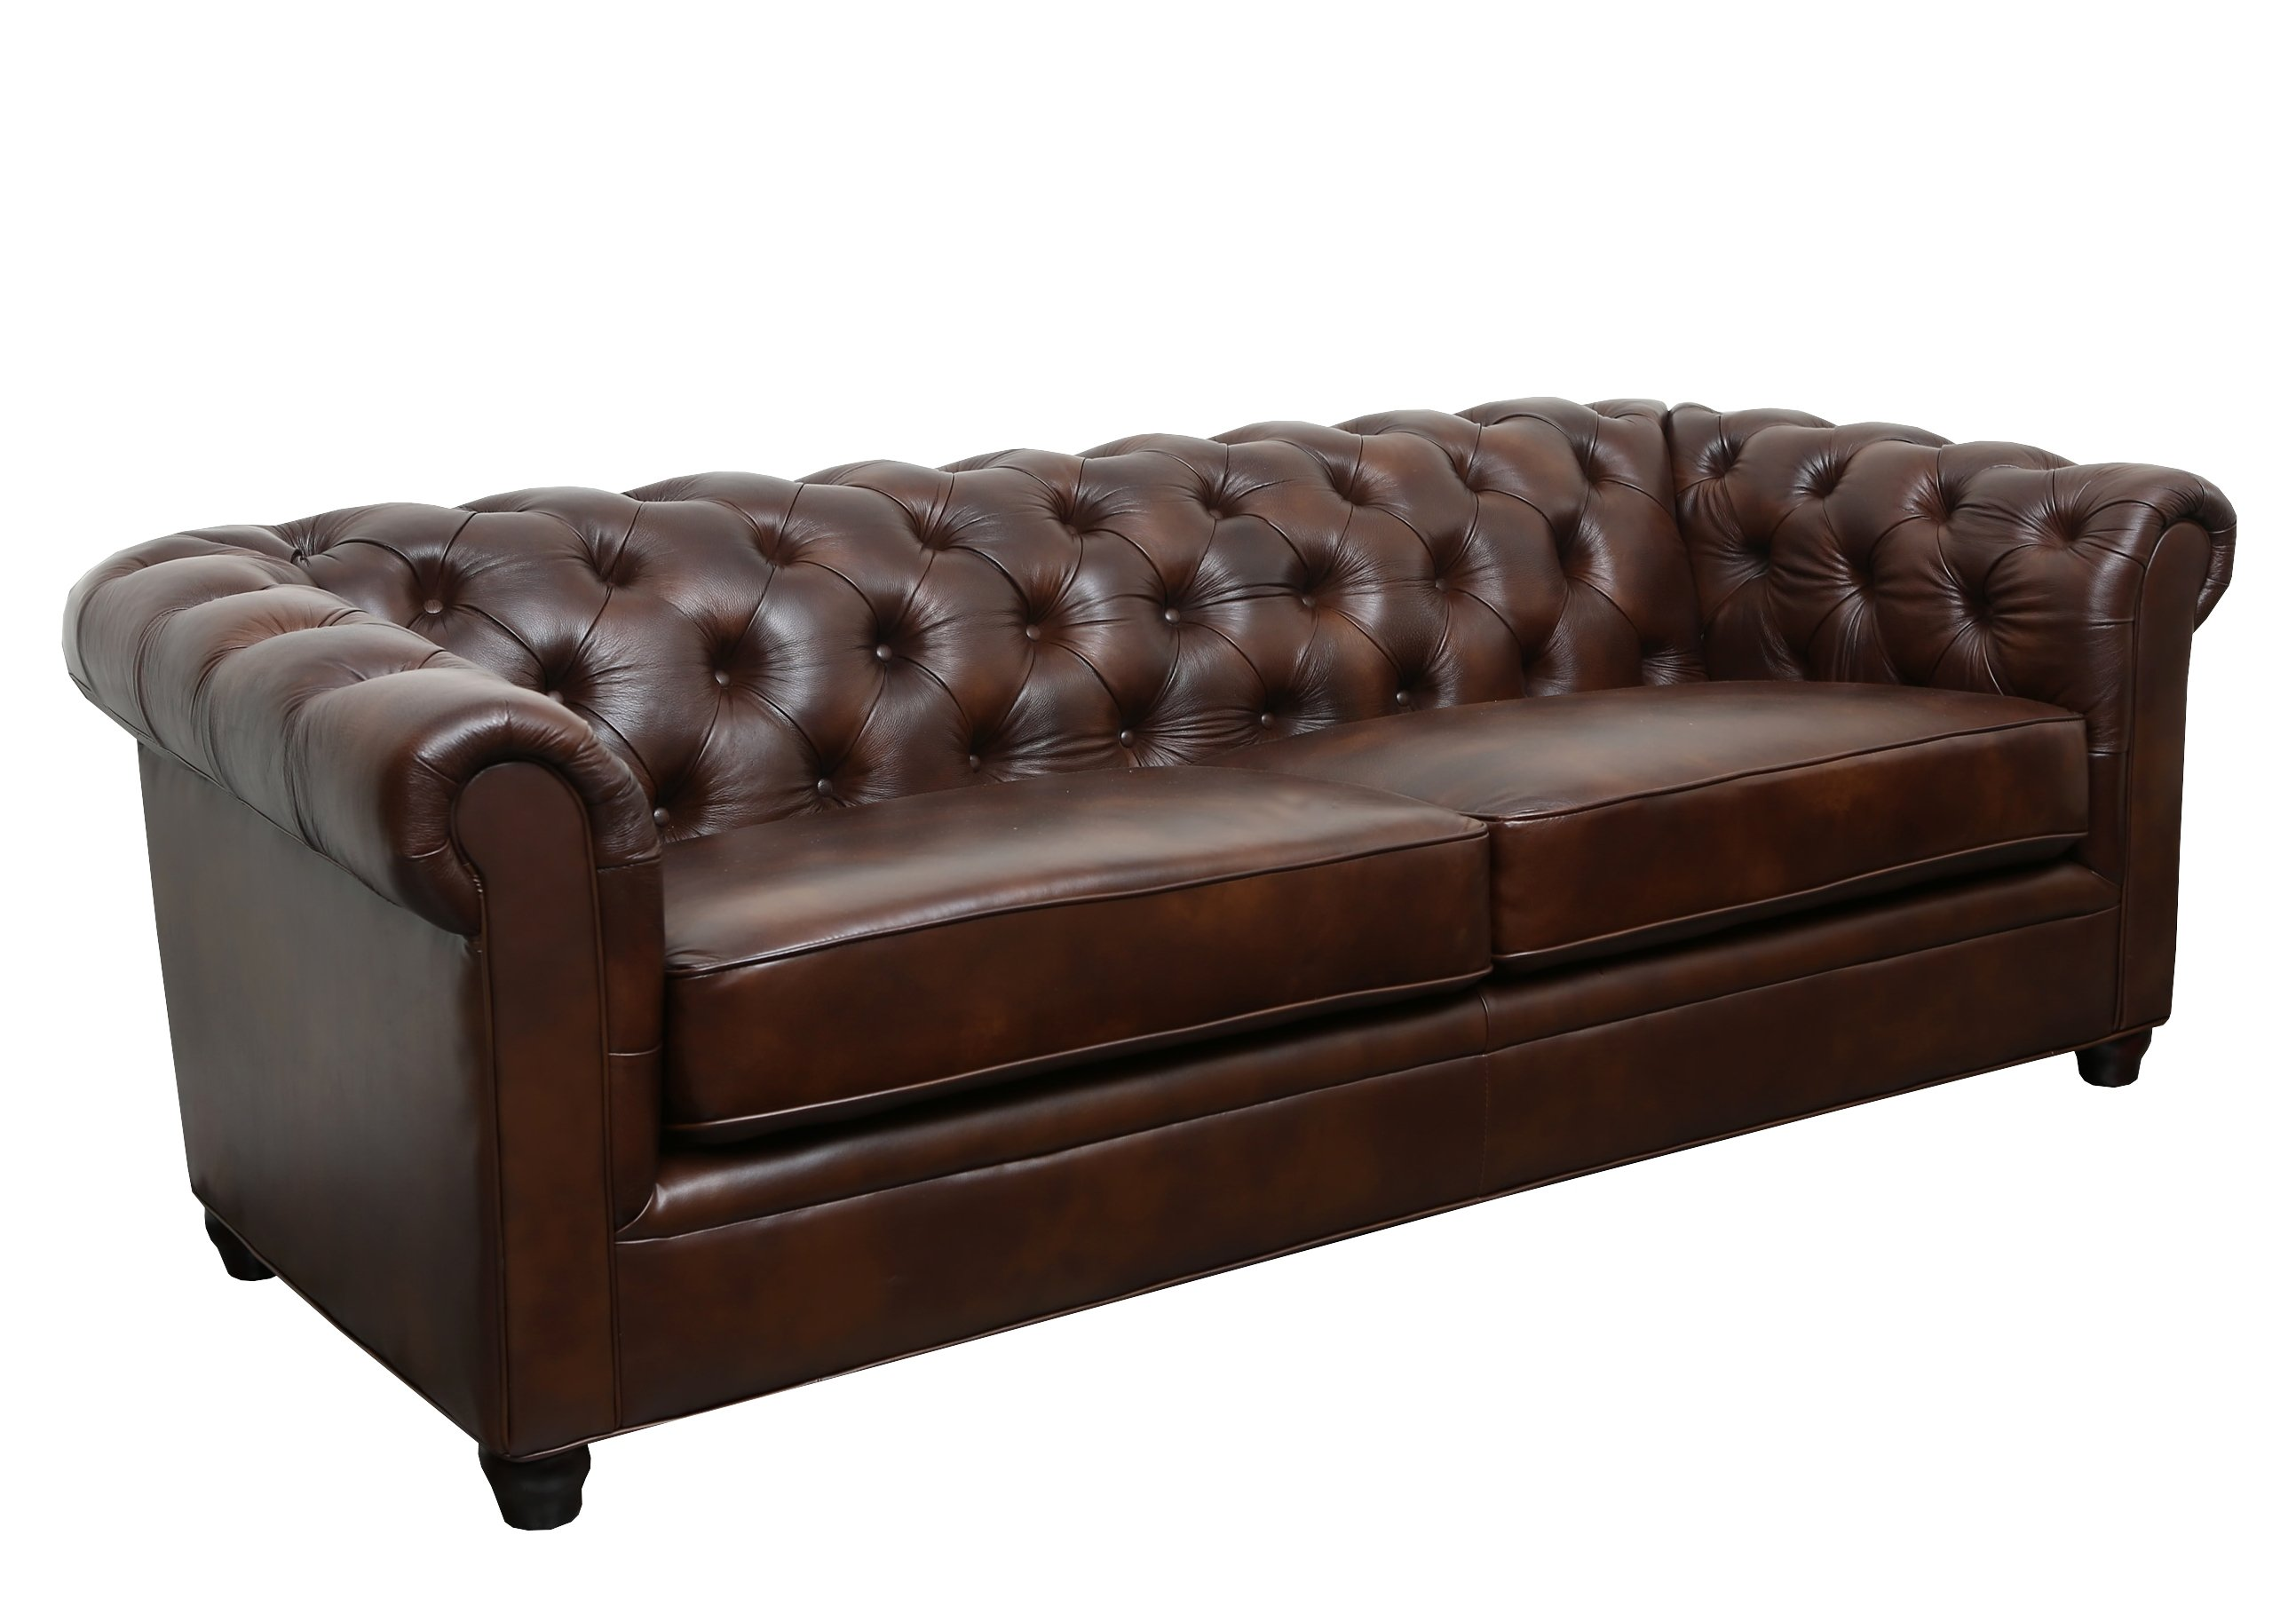 sofa chesterfield trent austin design harlem leather chesterfield sofa u0026 reviews | wayfair DQQDAWN